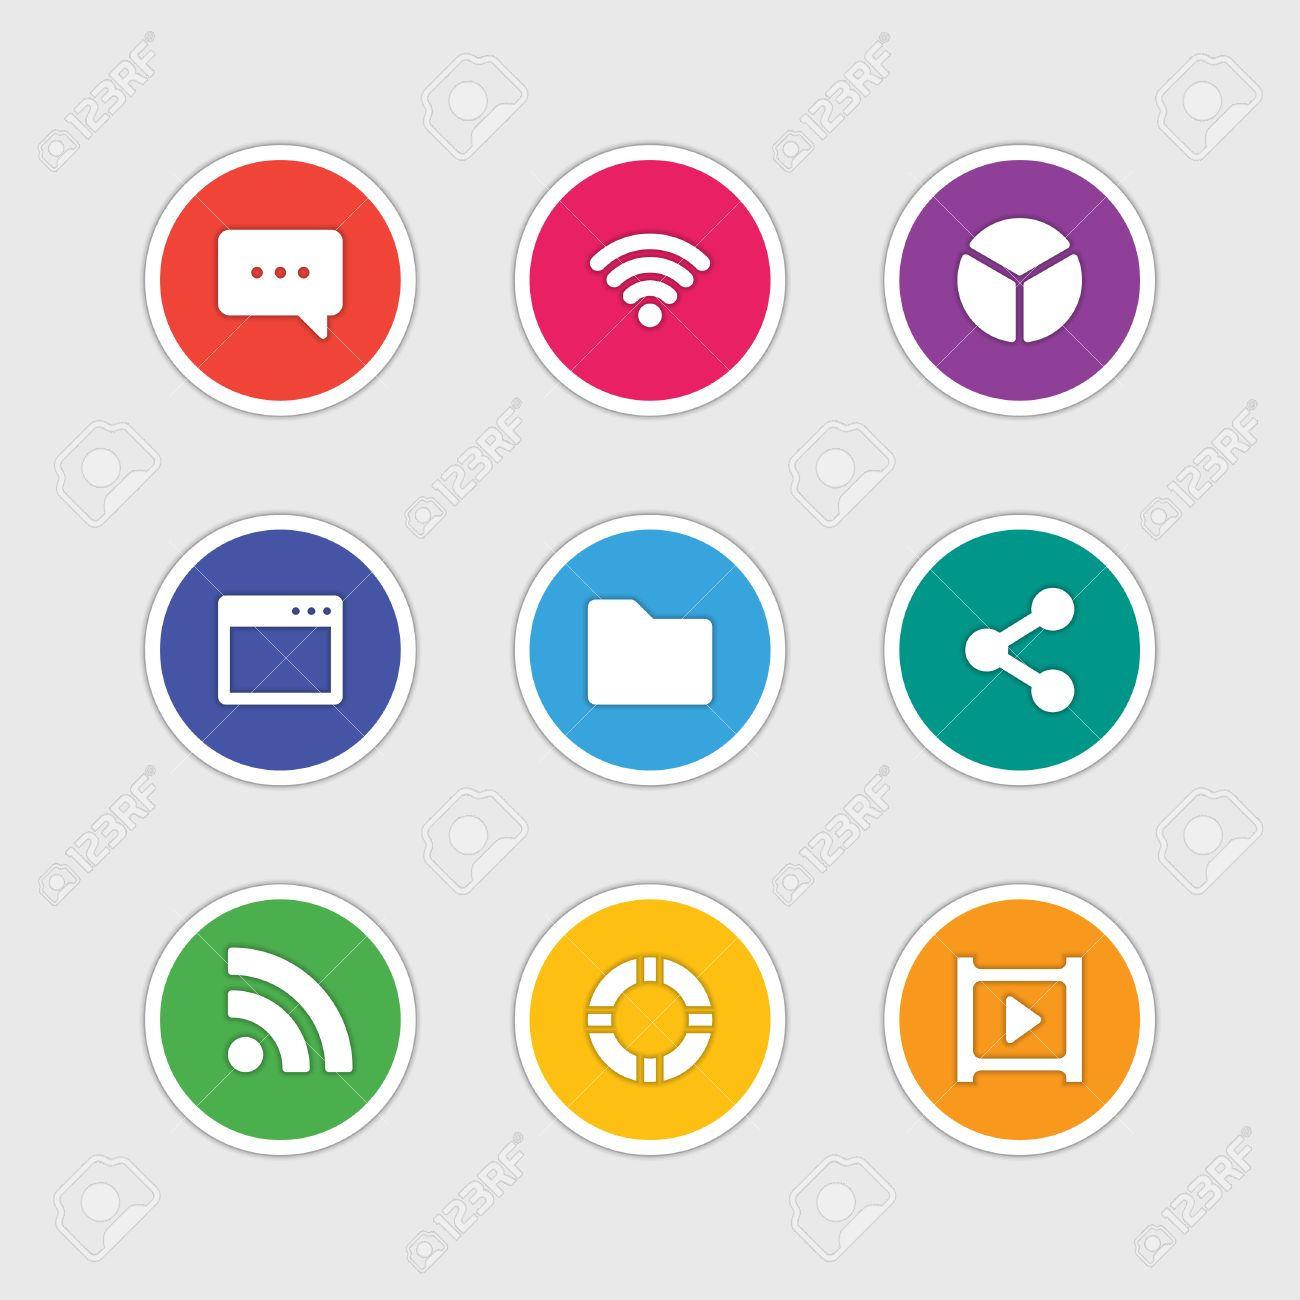 Material design style icons vector sign and symbols Message,